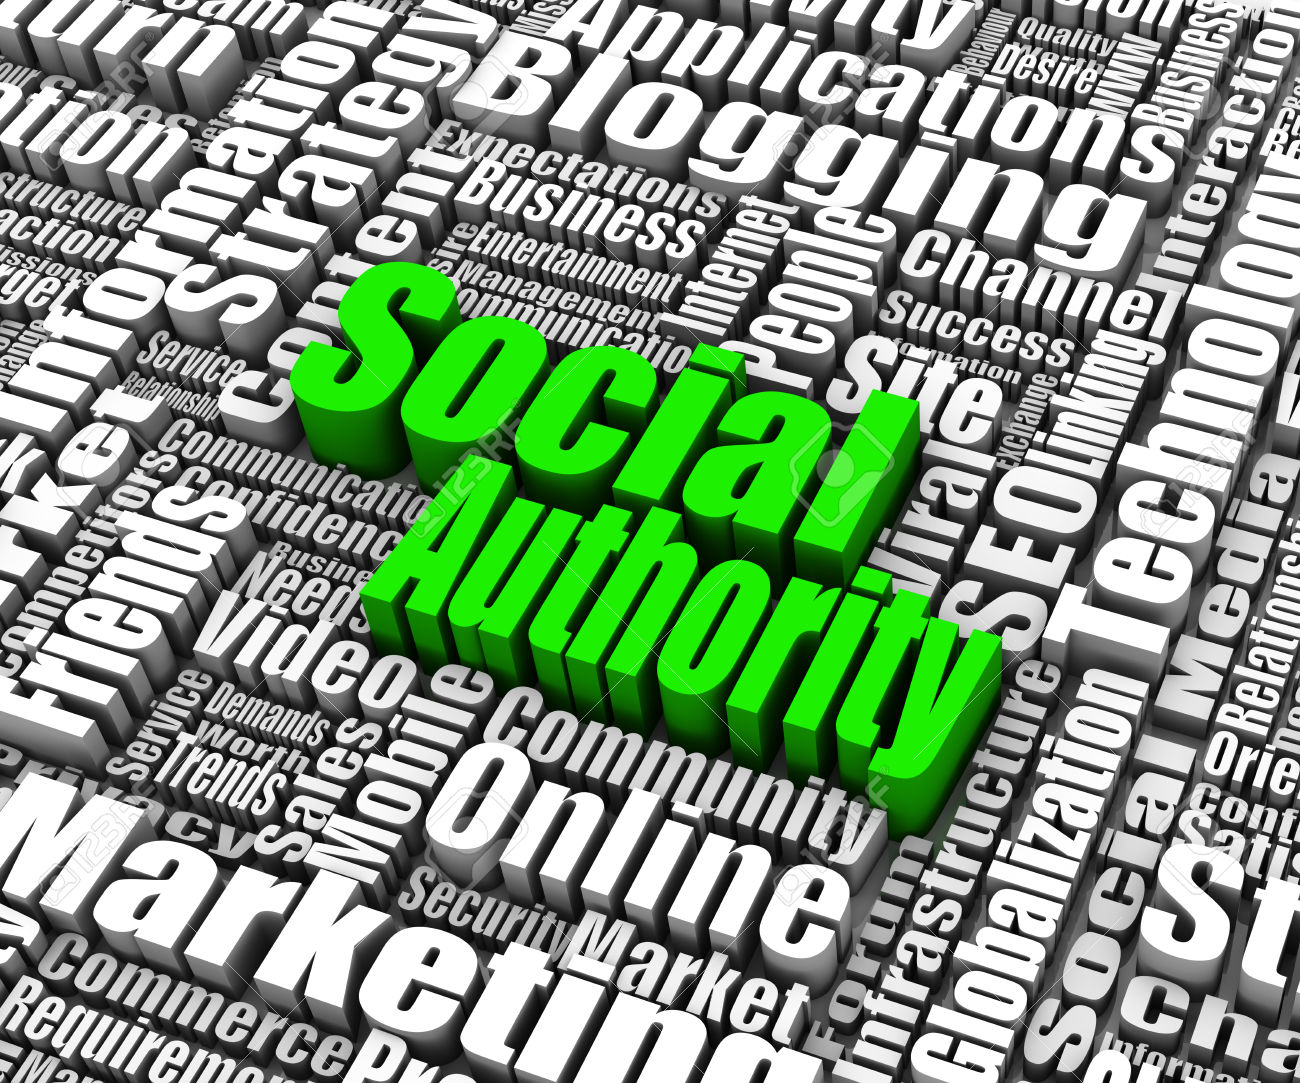 Amy Schmittauer teaches how to develop authority with social media